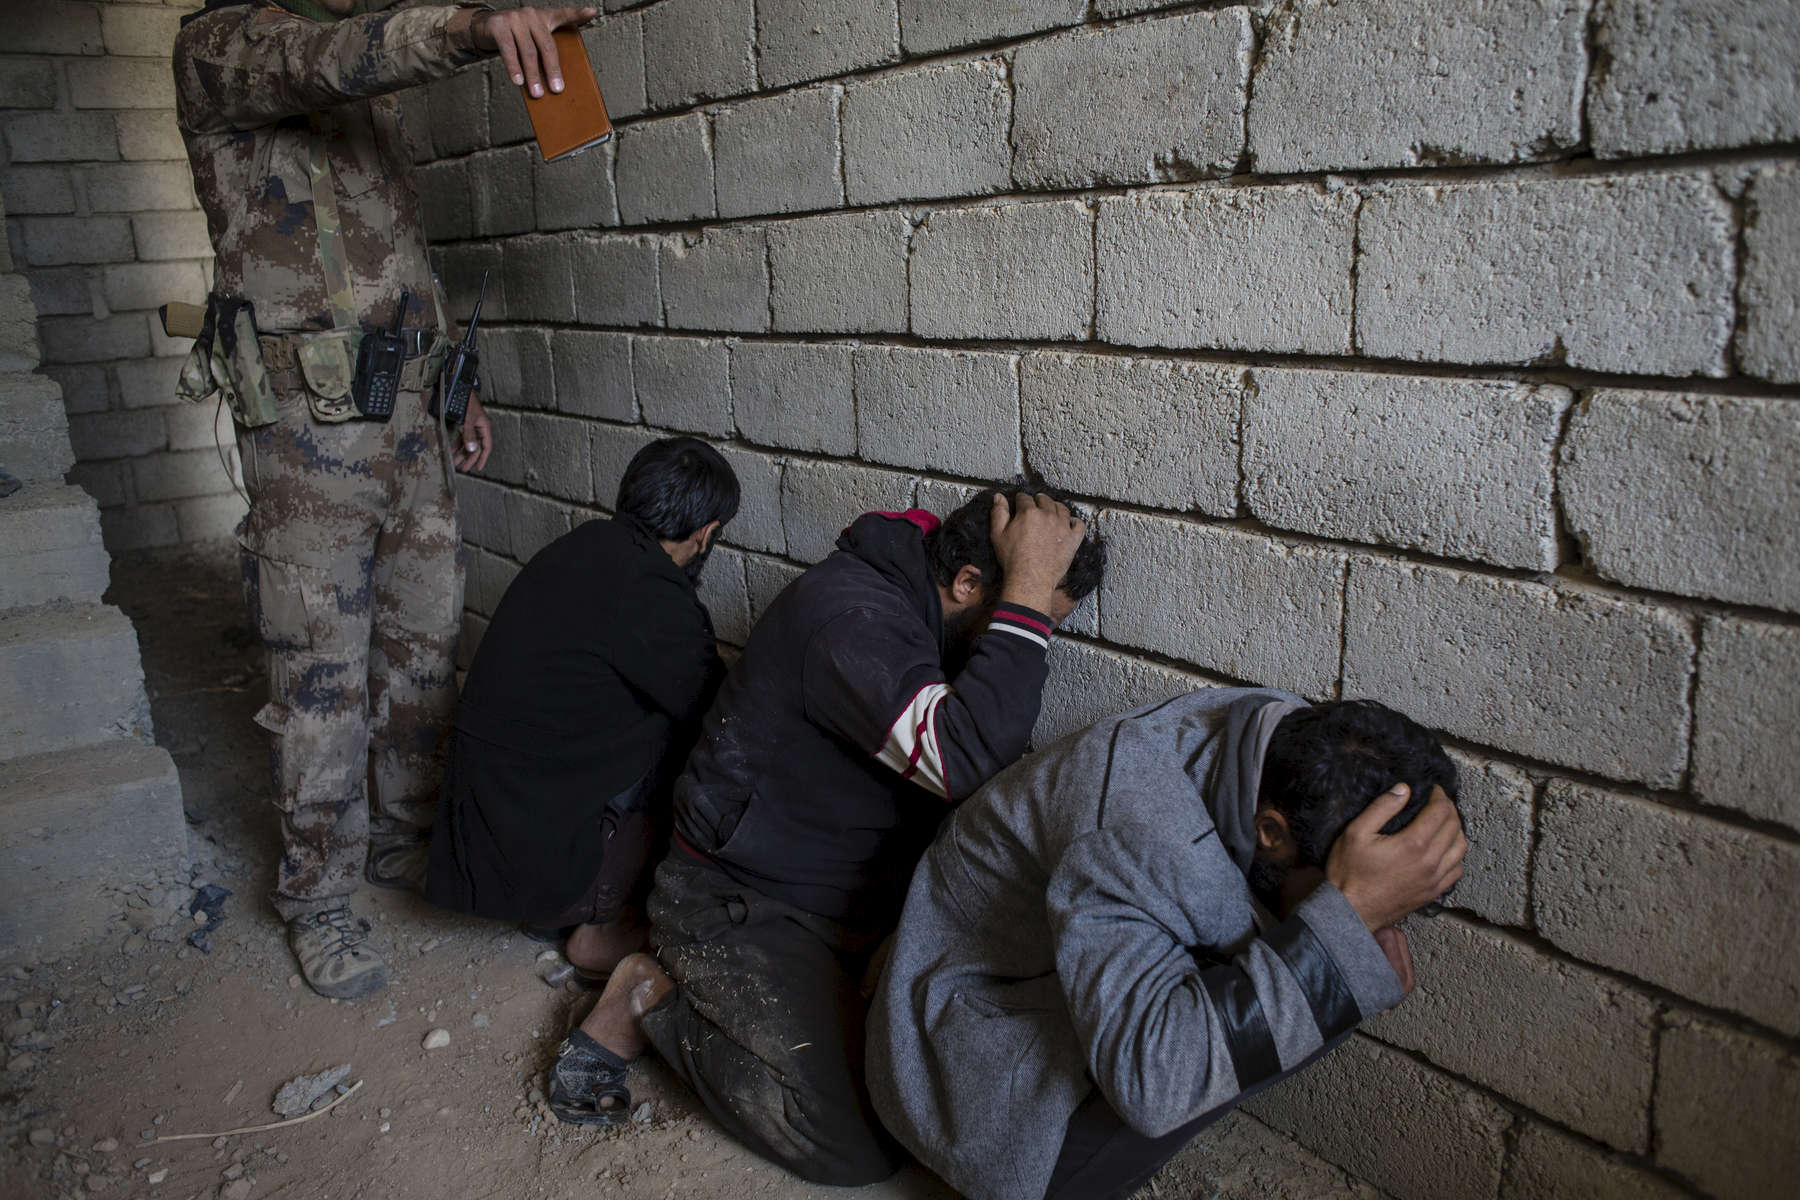 06/11/2016 -- Mosul, Iraq -- Three Suspect ISIS arrested by Iraqi special forces while they were searching for suspected ISIS in the houses in the liberated area.